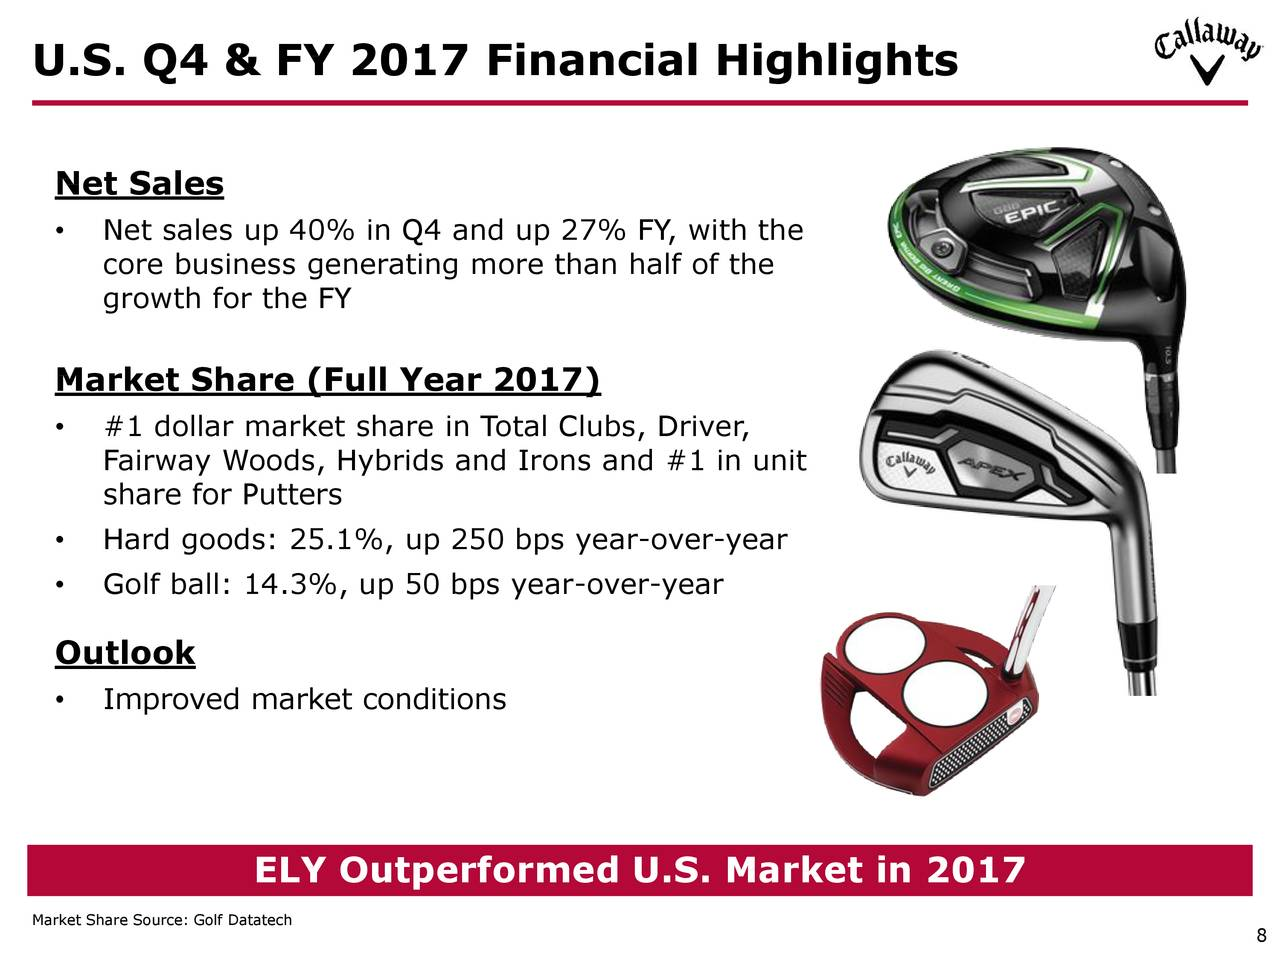 callayway golf company - full year 2017 net sales of $1,049 million , a 20% increase compared to 2016 - full year 2017 operating income of $79 million , a 78% increase compared to $44 million of operating income in 2016.